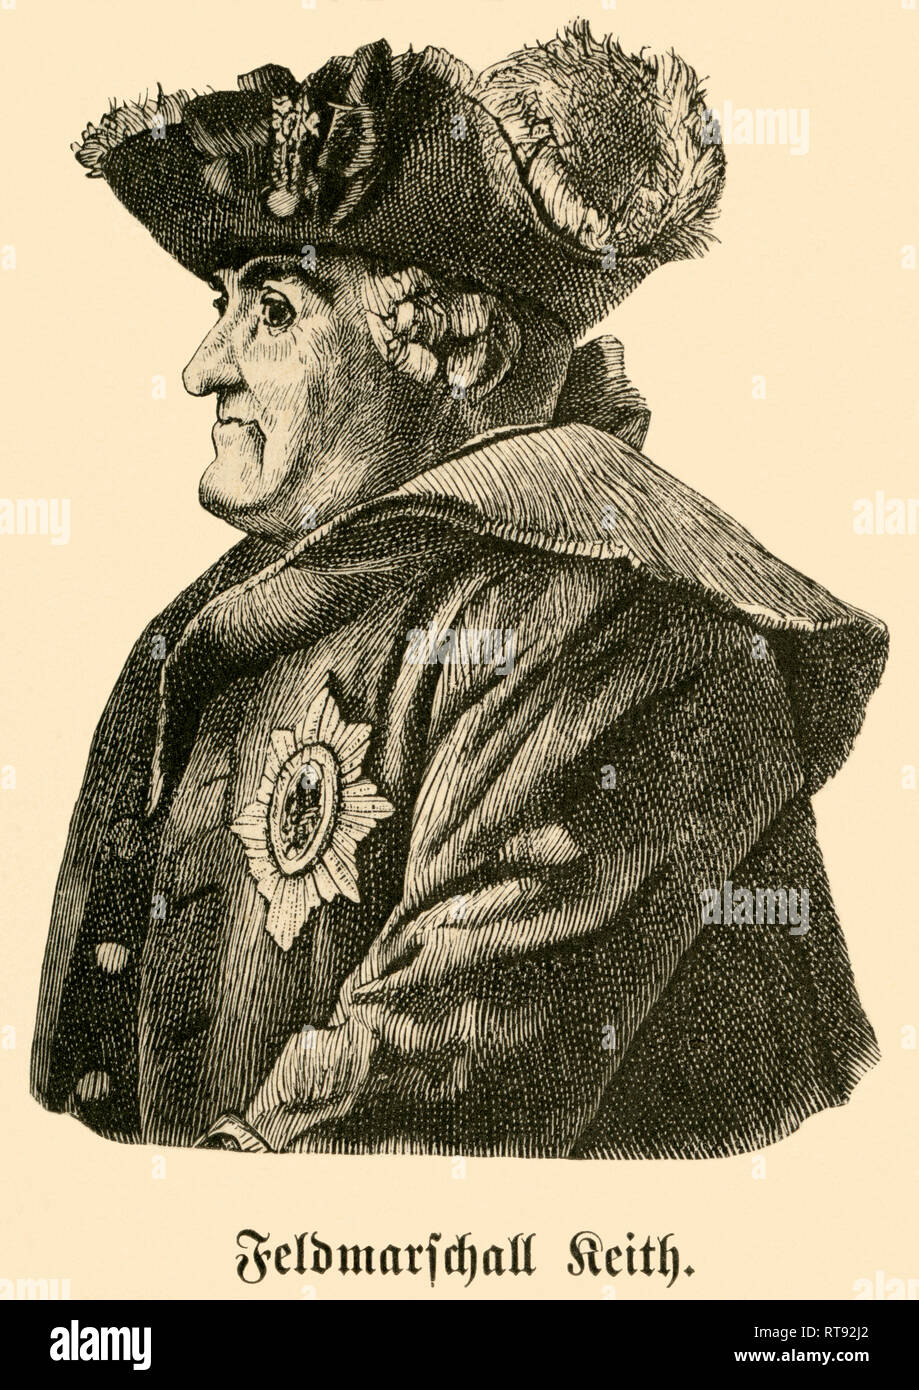 James Keith, Prussian Field Marshall, portrait from: 'Deutschlands Heerführer' (German military leader), 1640-1894, portrayed by Sprößer, publishing house Ferdinand Hirt and son, Leipzig, 1895., Additional-Rights-Clearance-Info-Not-Available - Stock Image